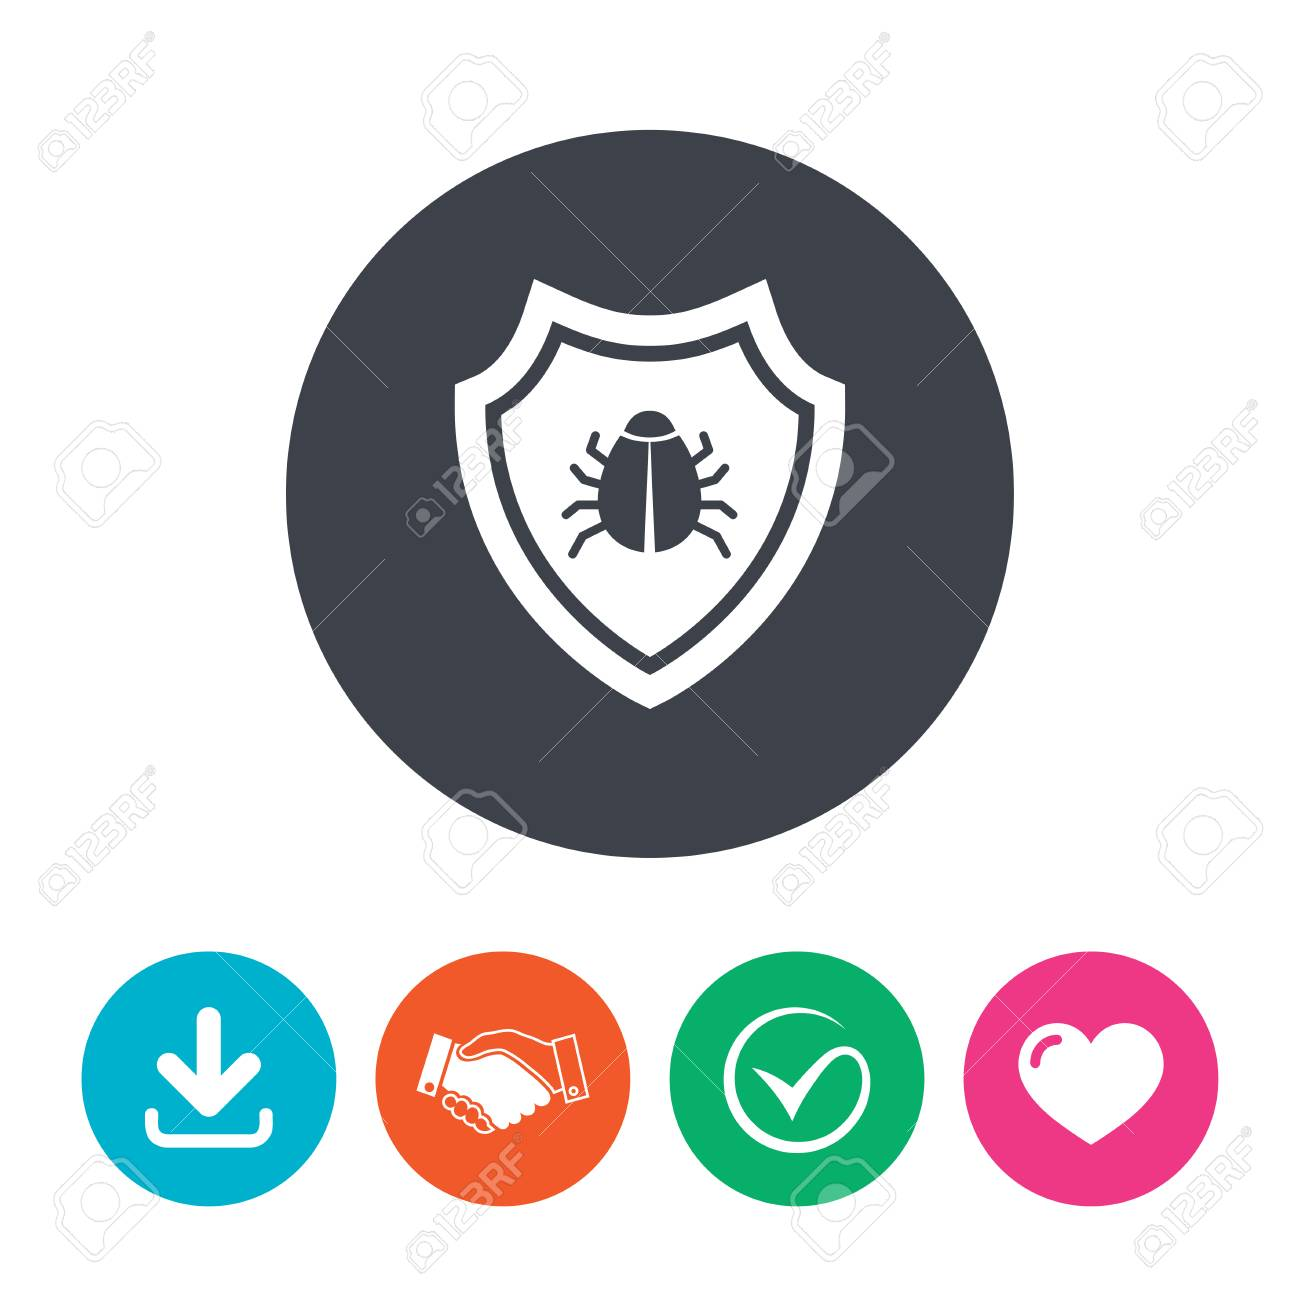 Shield sign icon  Virus protection symbol  Bug symbol  Download